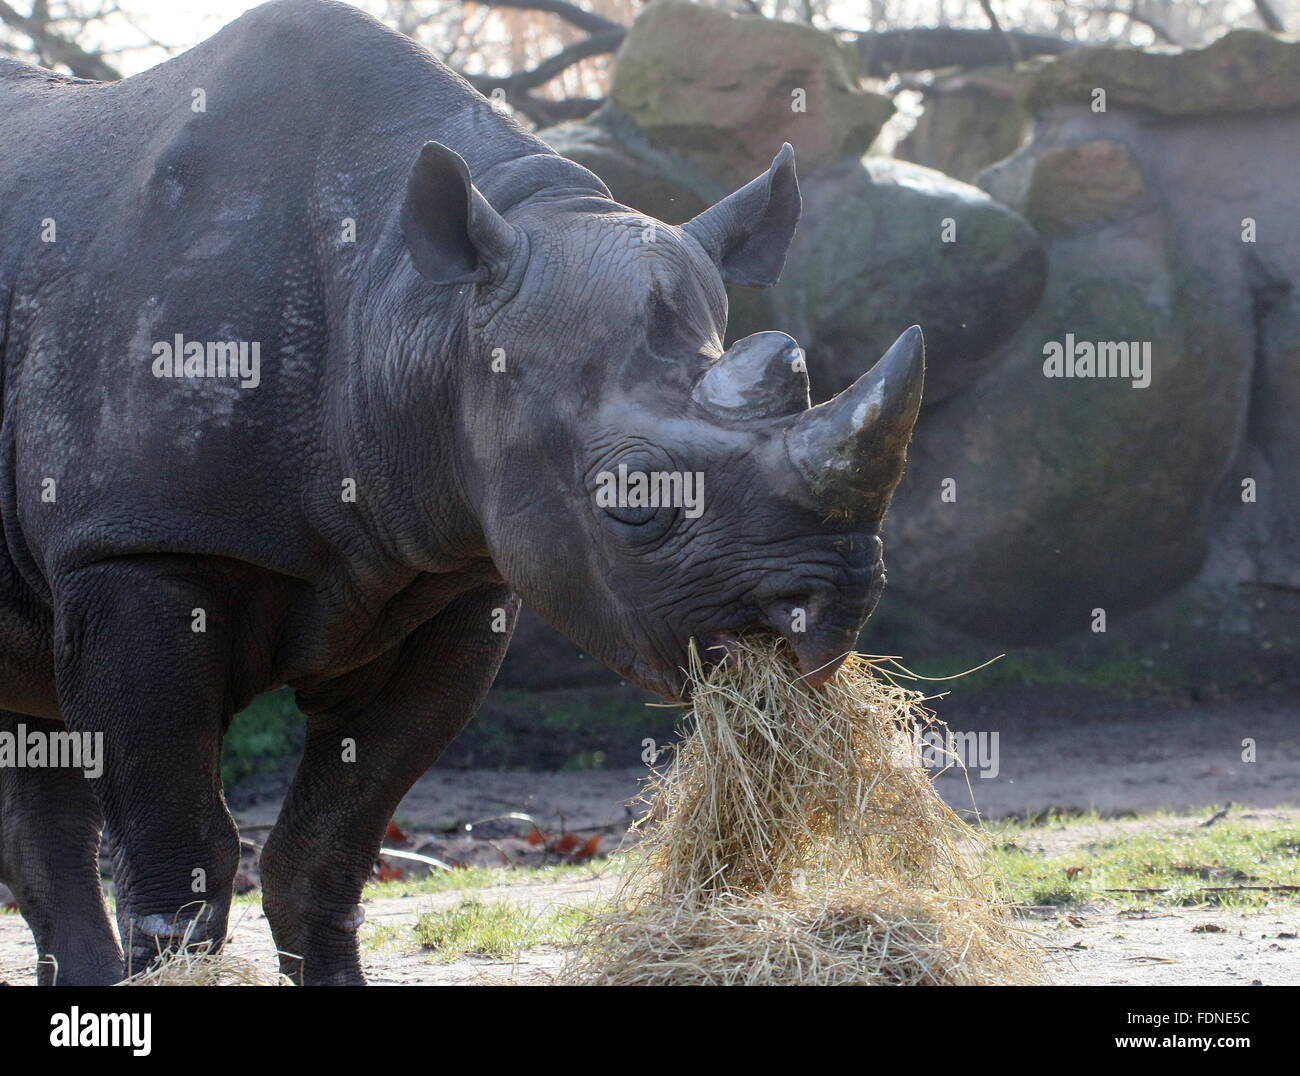 East African black or hook lipped rhino (Diceros bicornis) feeding on hay - Stock Image